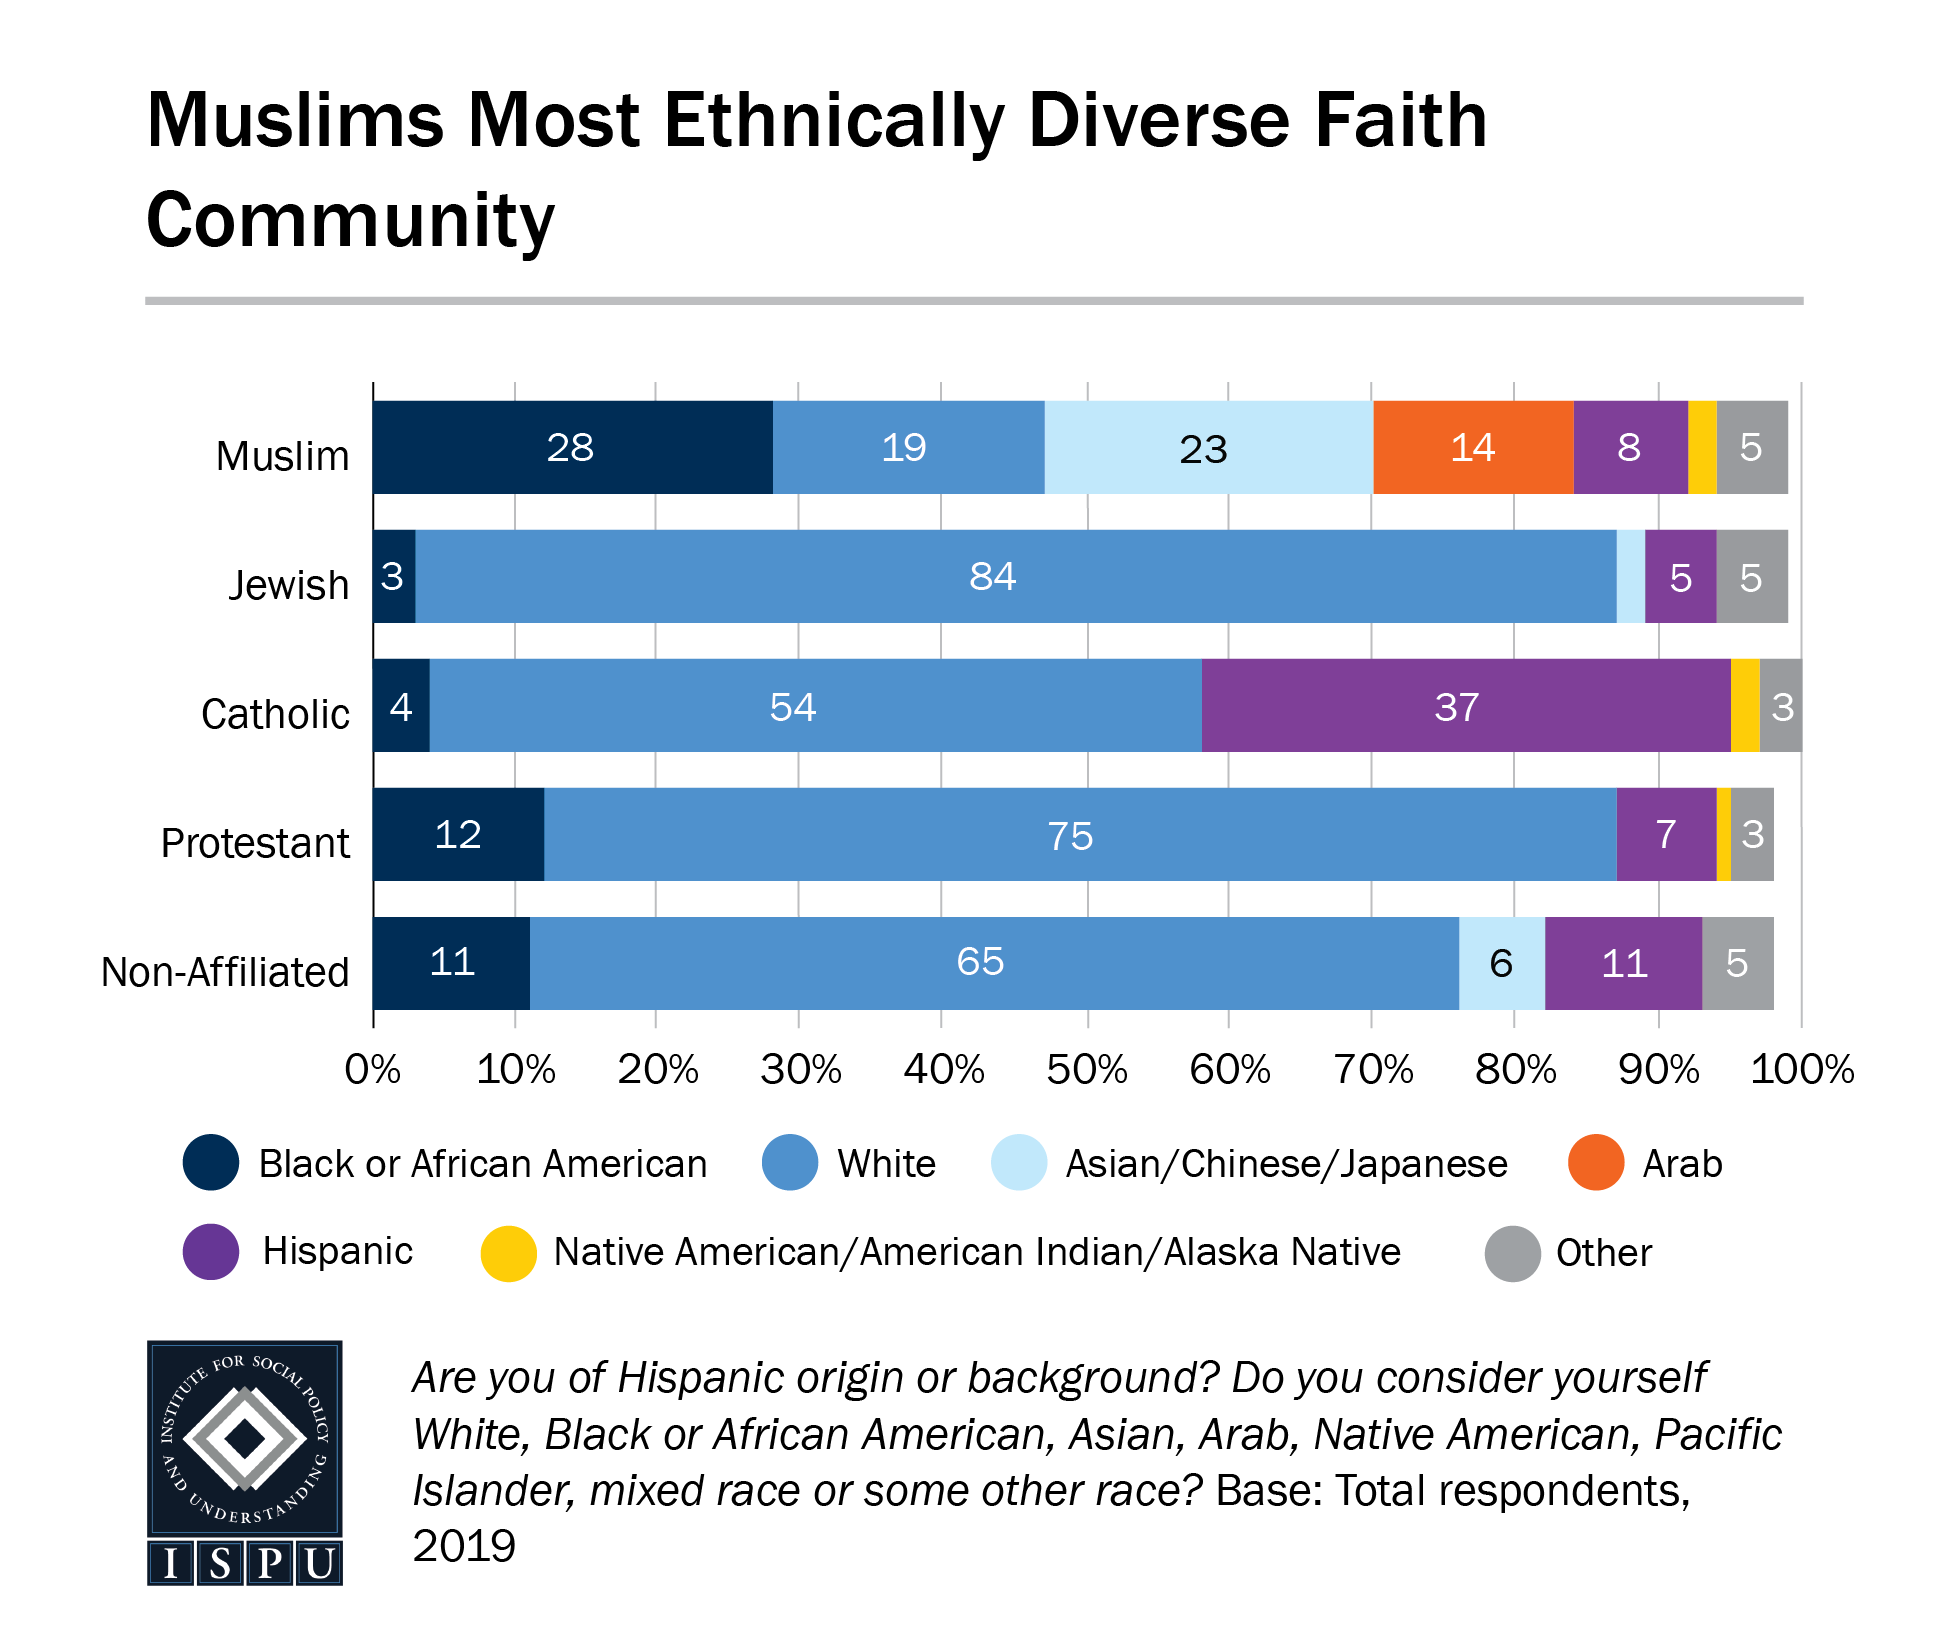 A bar graph showing that Muslims are the most ethnically diverse faith community in the U.S.